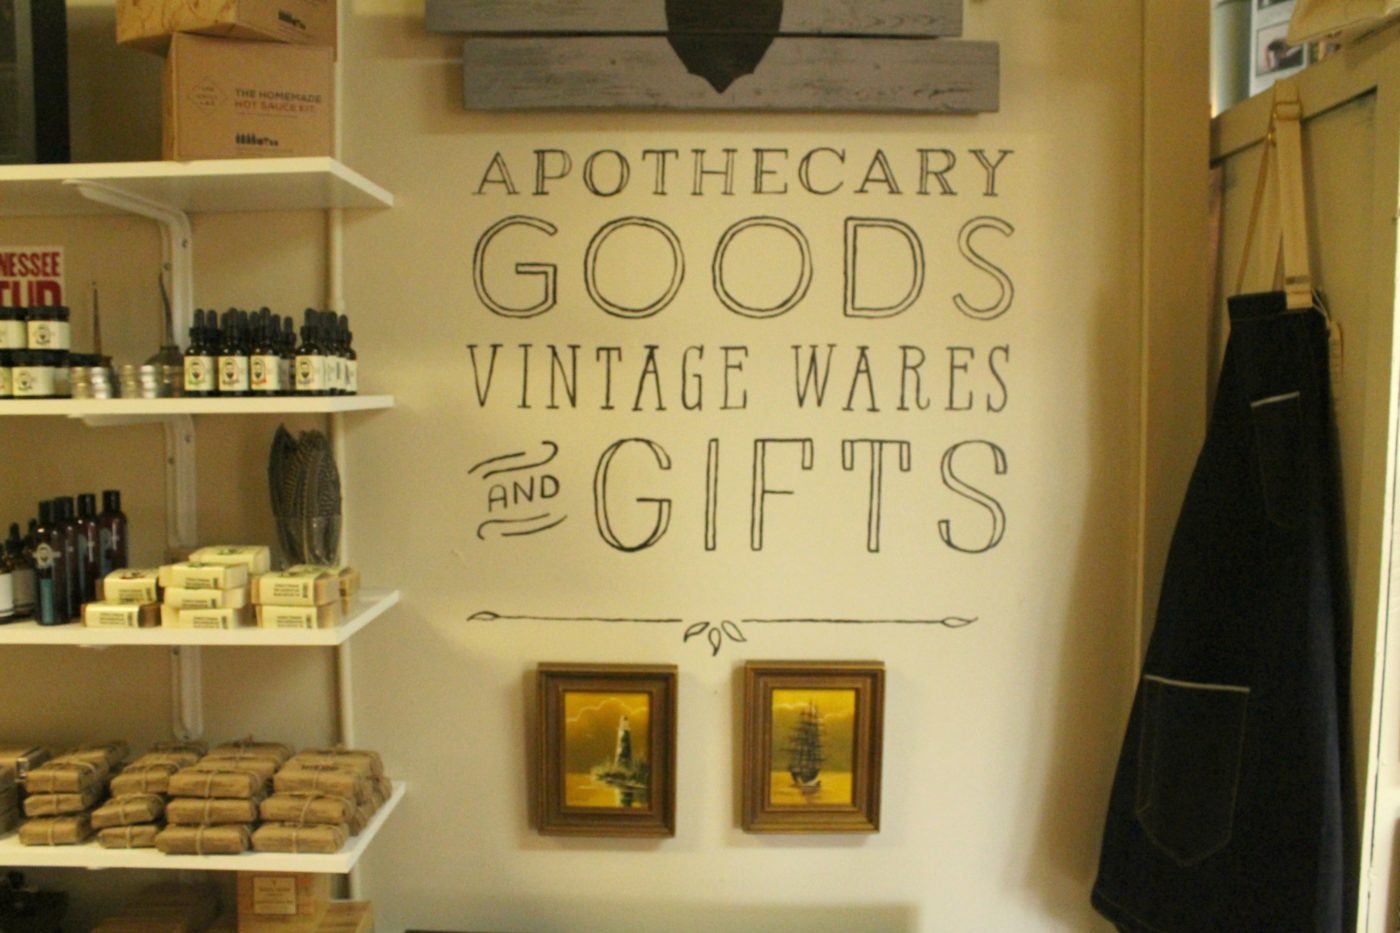 Find the best of apothecary goods along with vintage wares and gifts at Refinery423 Mercantile.